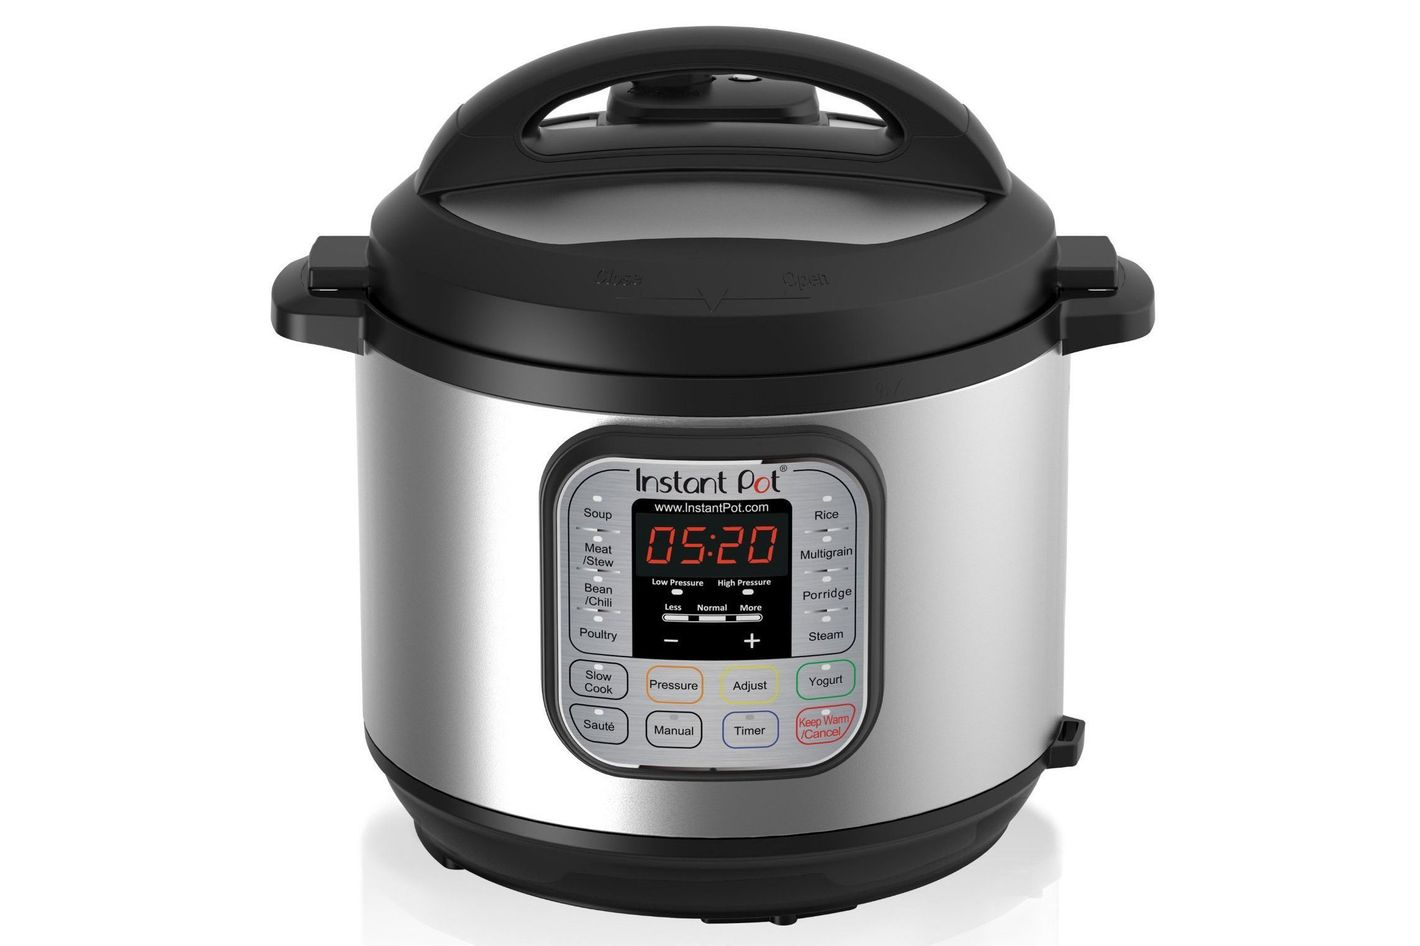 Instant Pot DUO60 6-Quart 7-in-1 Multi-Use Programmable Pressure Cooker